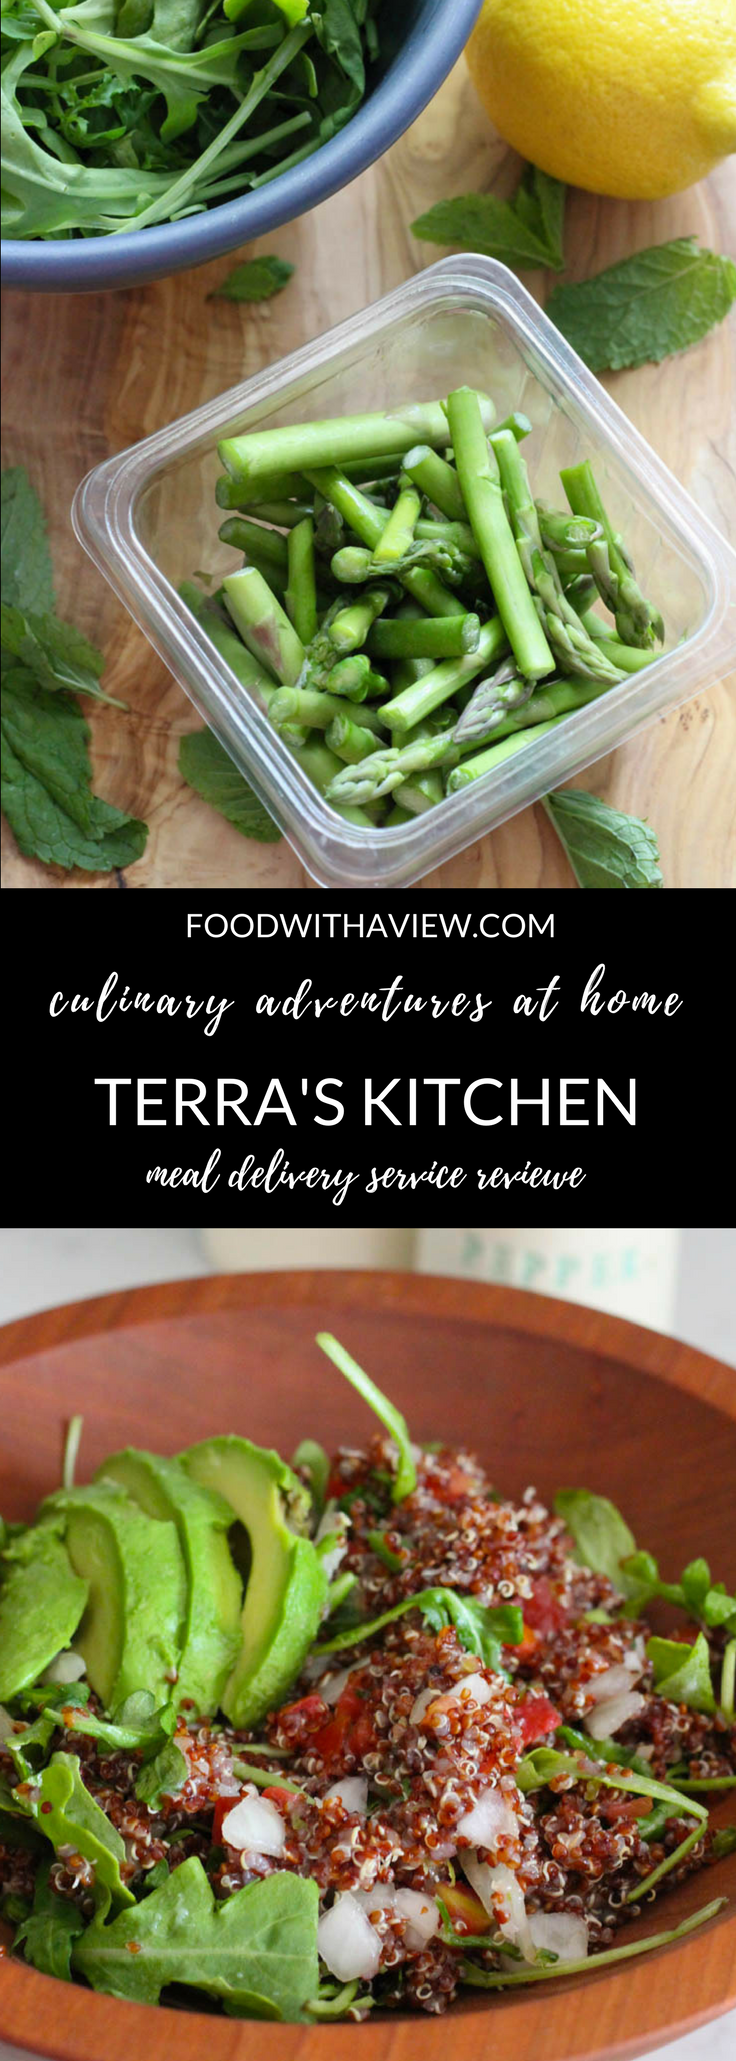 Terras Kitchen pinterest image long by foodwithaview